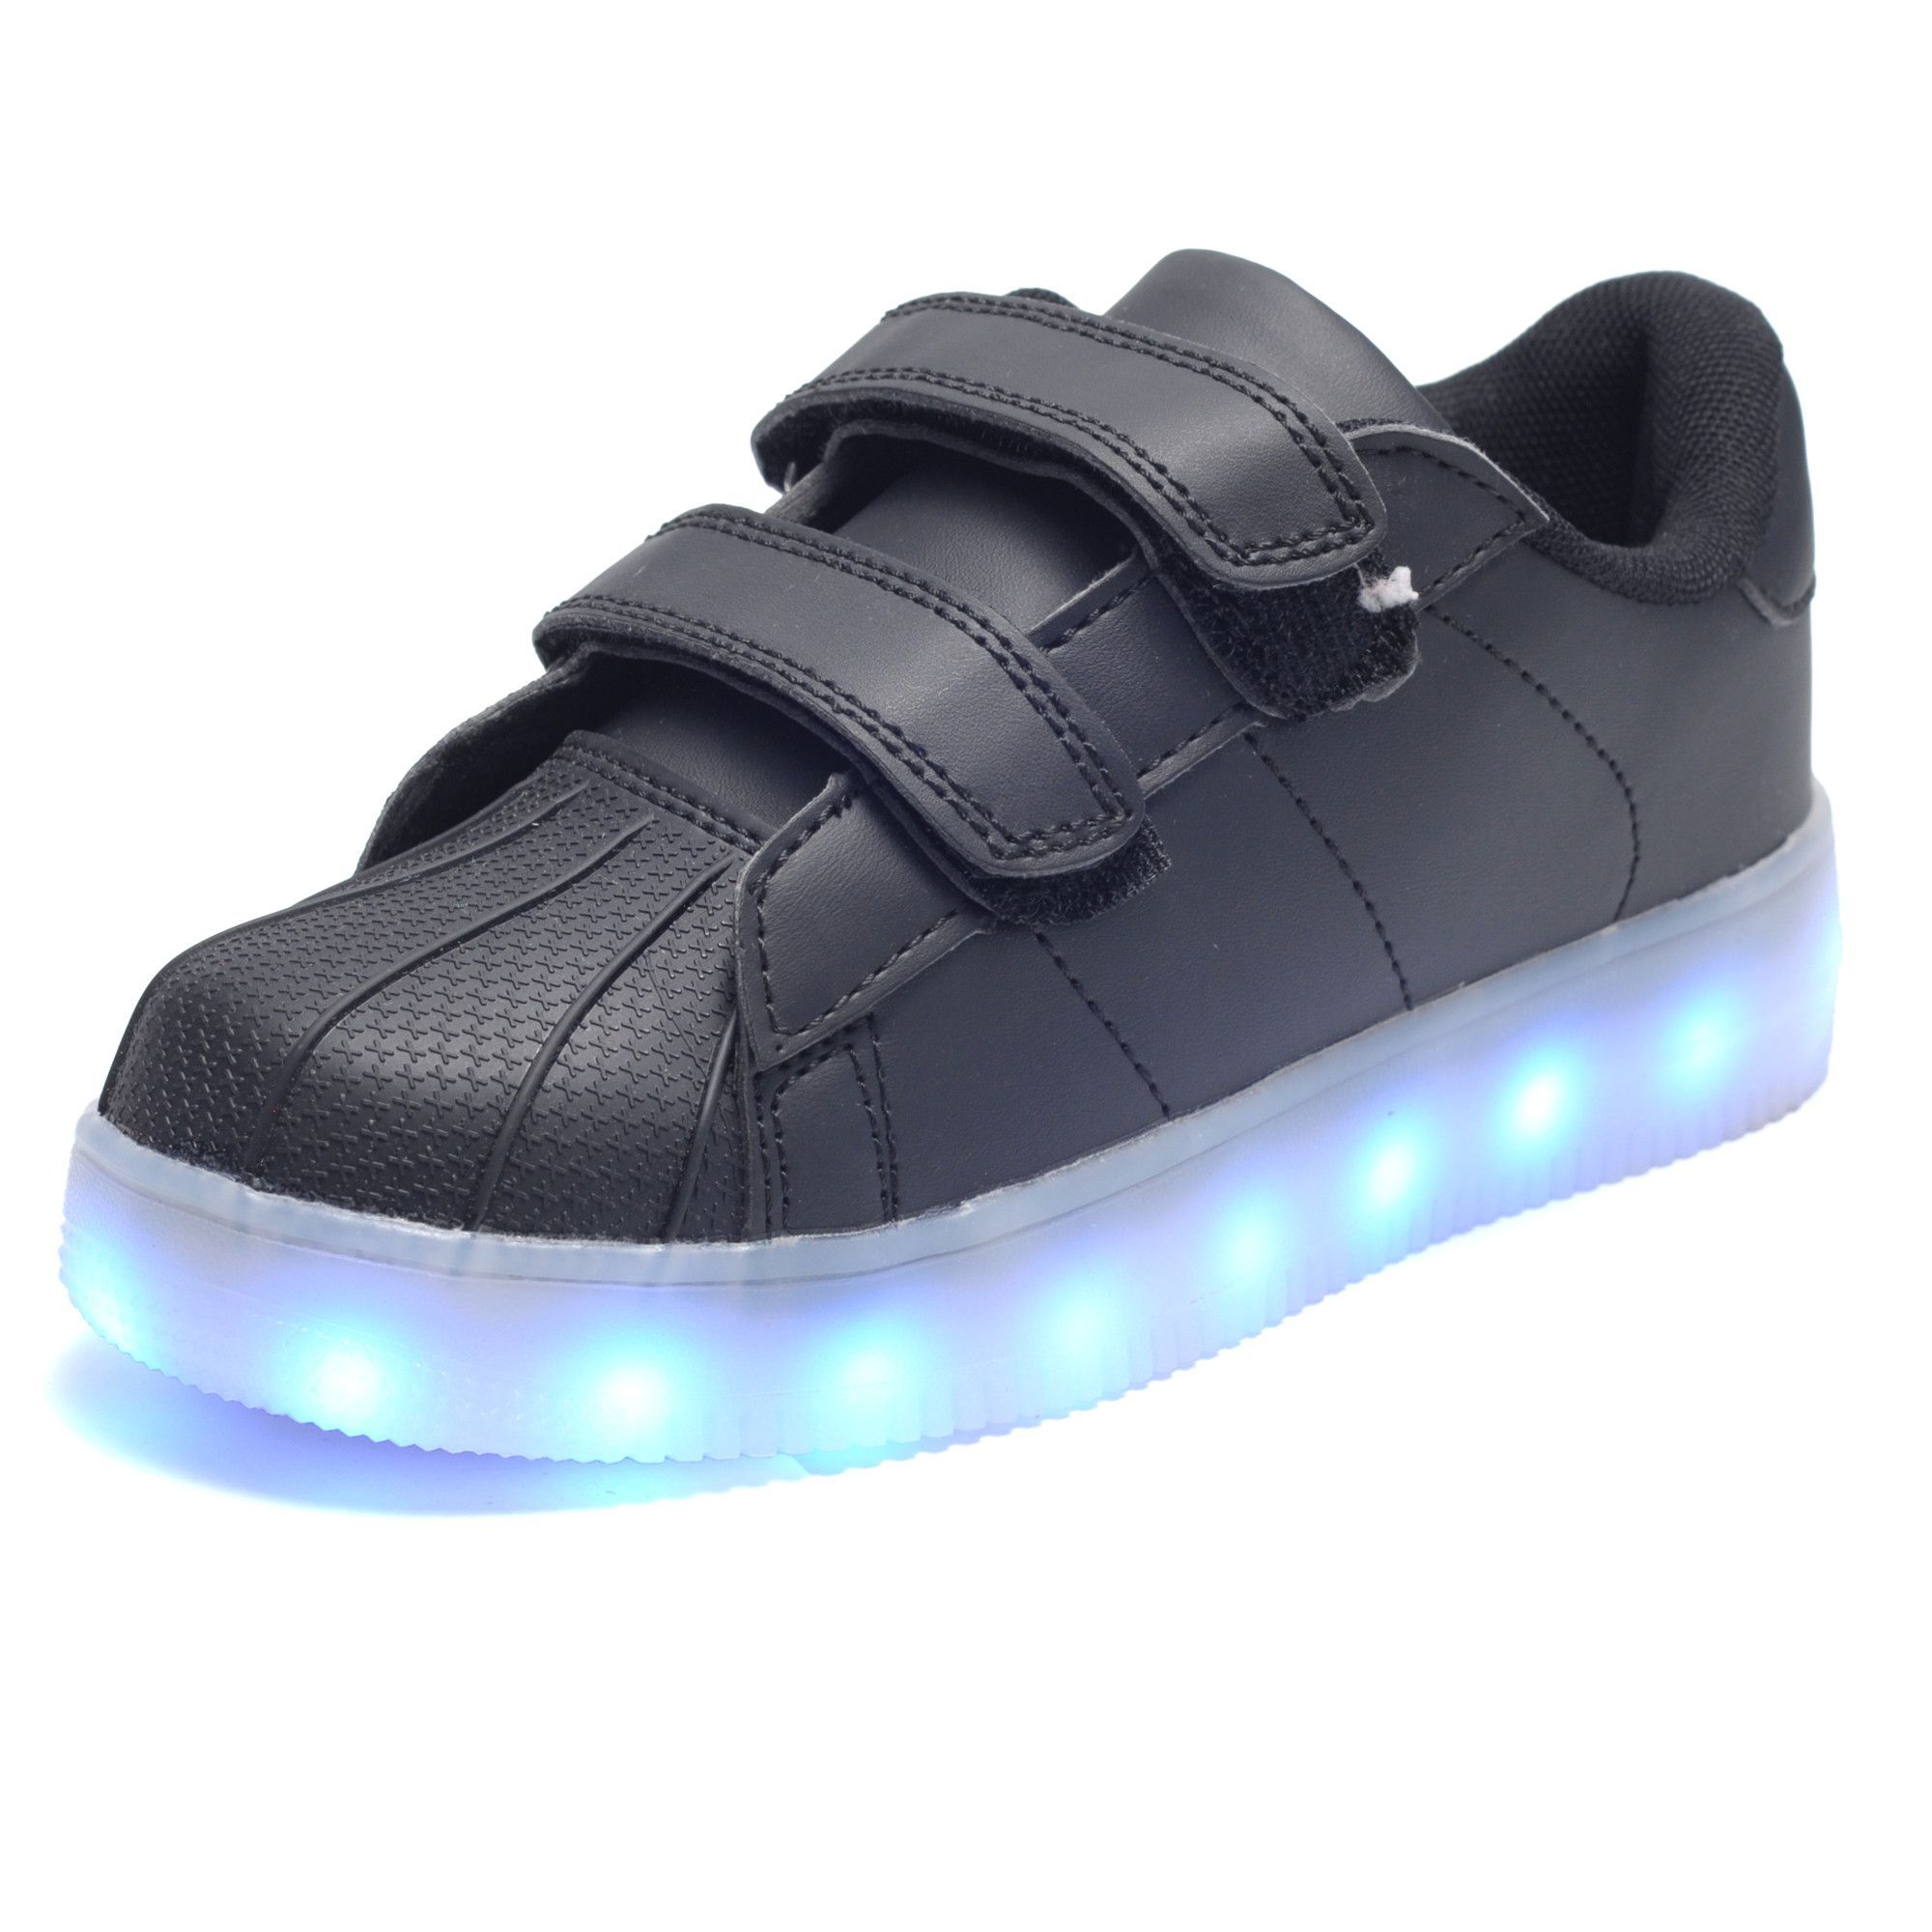 velcro shoes for kids